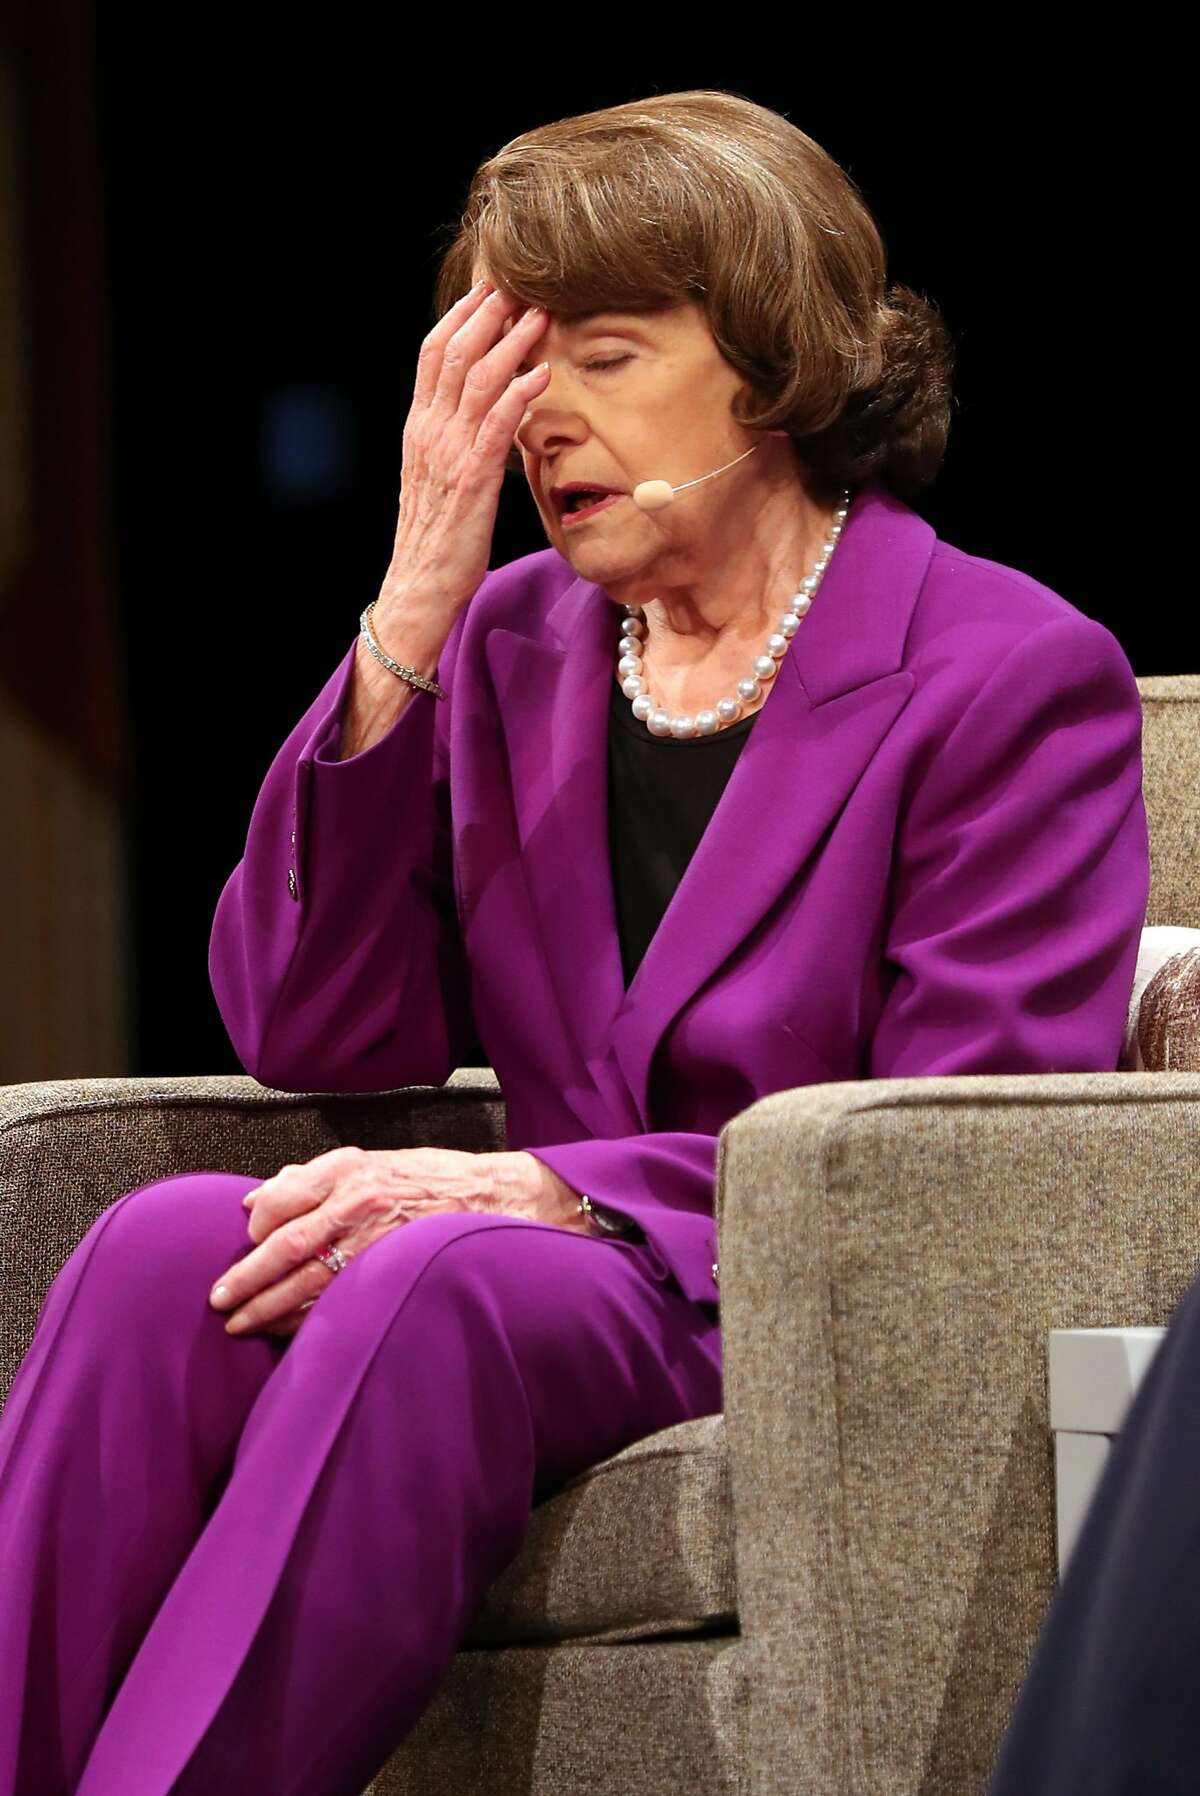 Sen. Dianne Feinstein reacts while talking about the Hurricane Harvey flooding in Houston during a conversation with Ellen Tauscher during The Commonwealth Club of California event at Herbst Theater in San Francisco, Calif. on Tuesday, August 29, 2017.